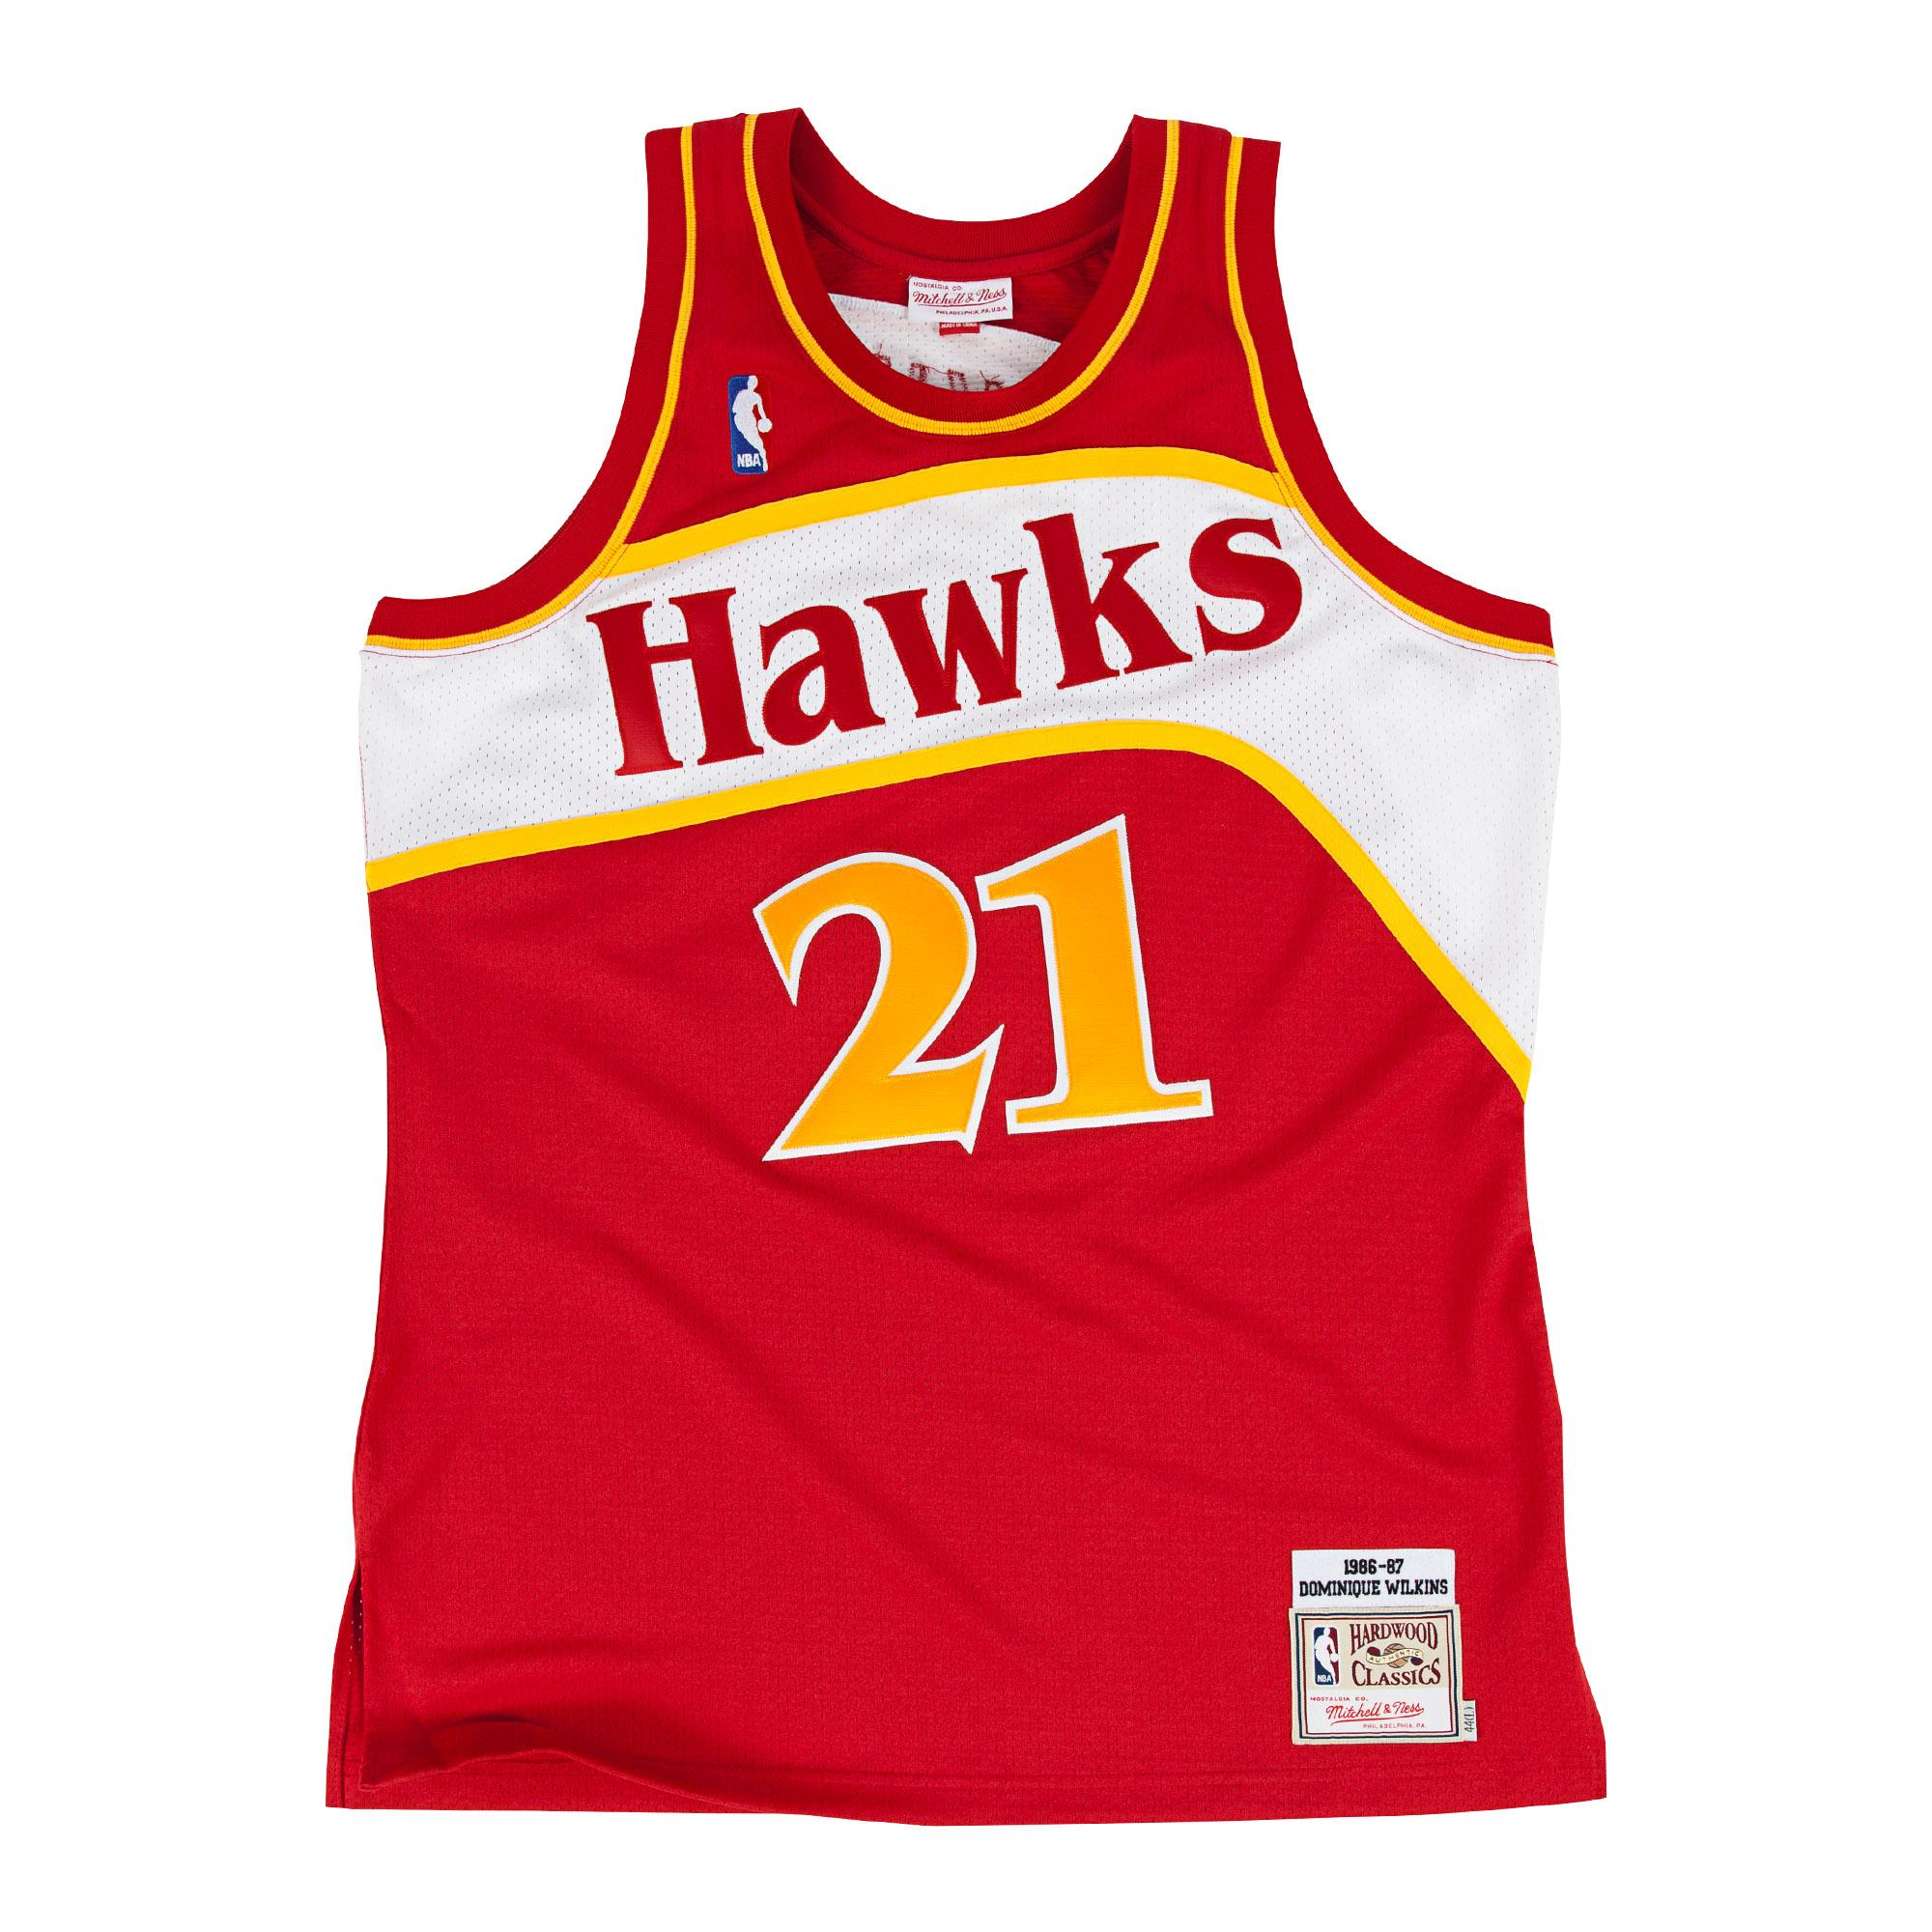 Dominique Wilkins 1986-87 Road Authentic Jersey Our Price  £200.00 ... 904ca9869